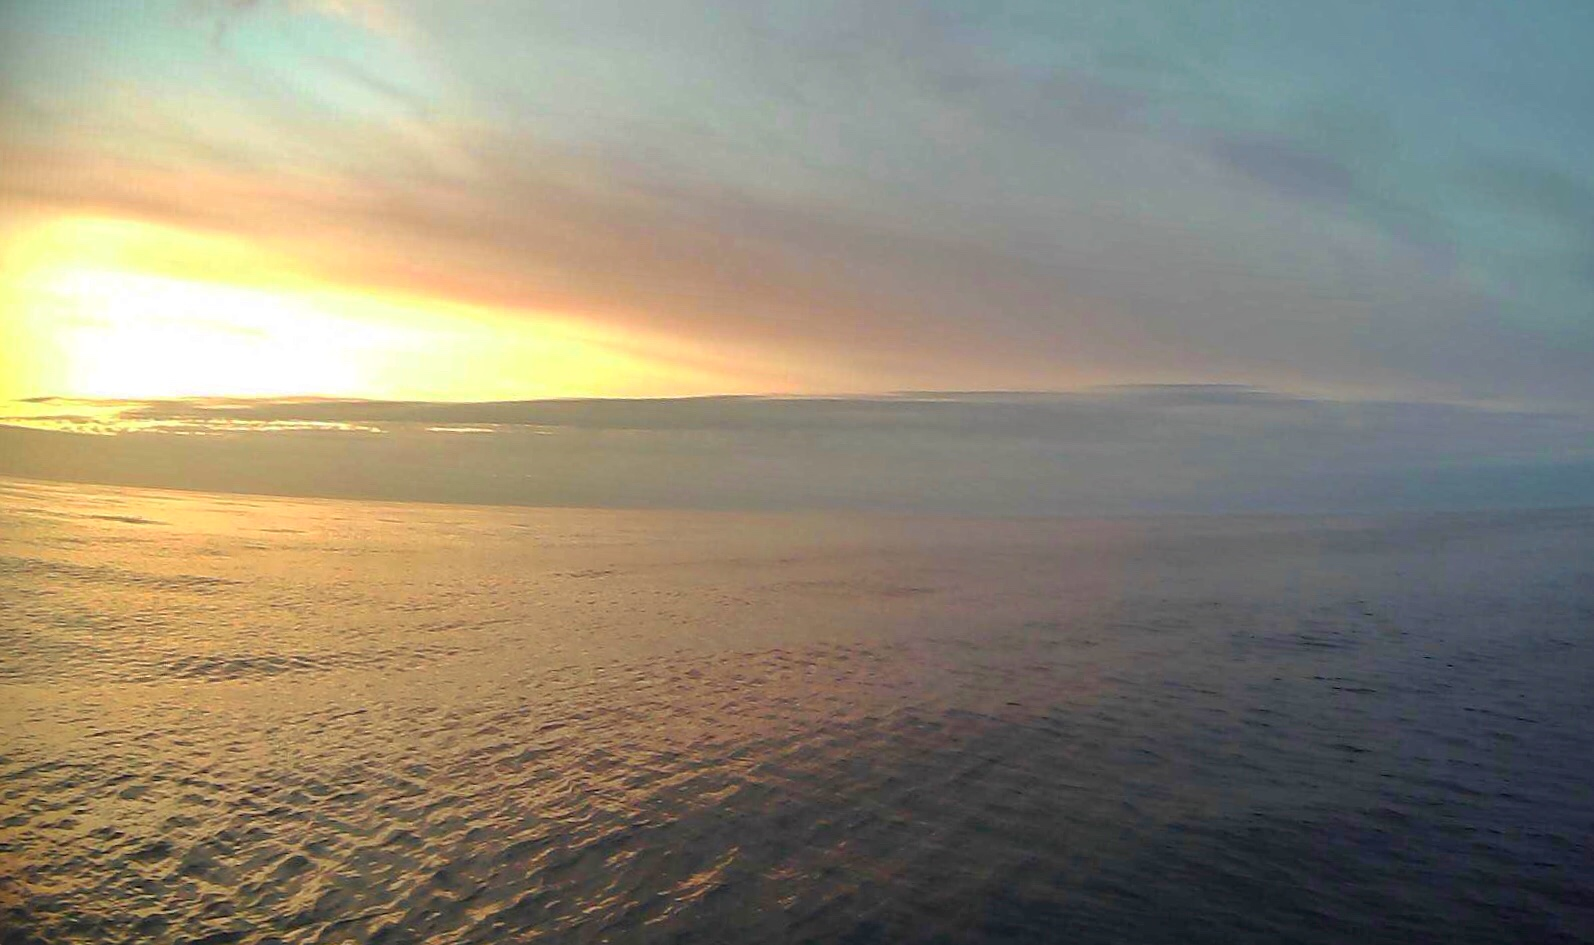 View from the saildrone as it carries out surveys in the US Arctic.  Photo: Saildrone Inc. & NOAA